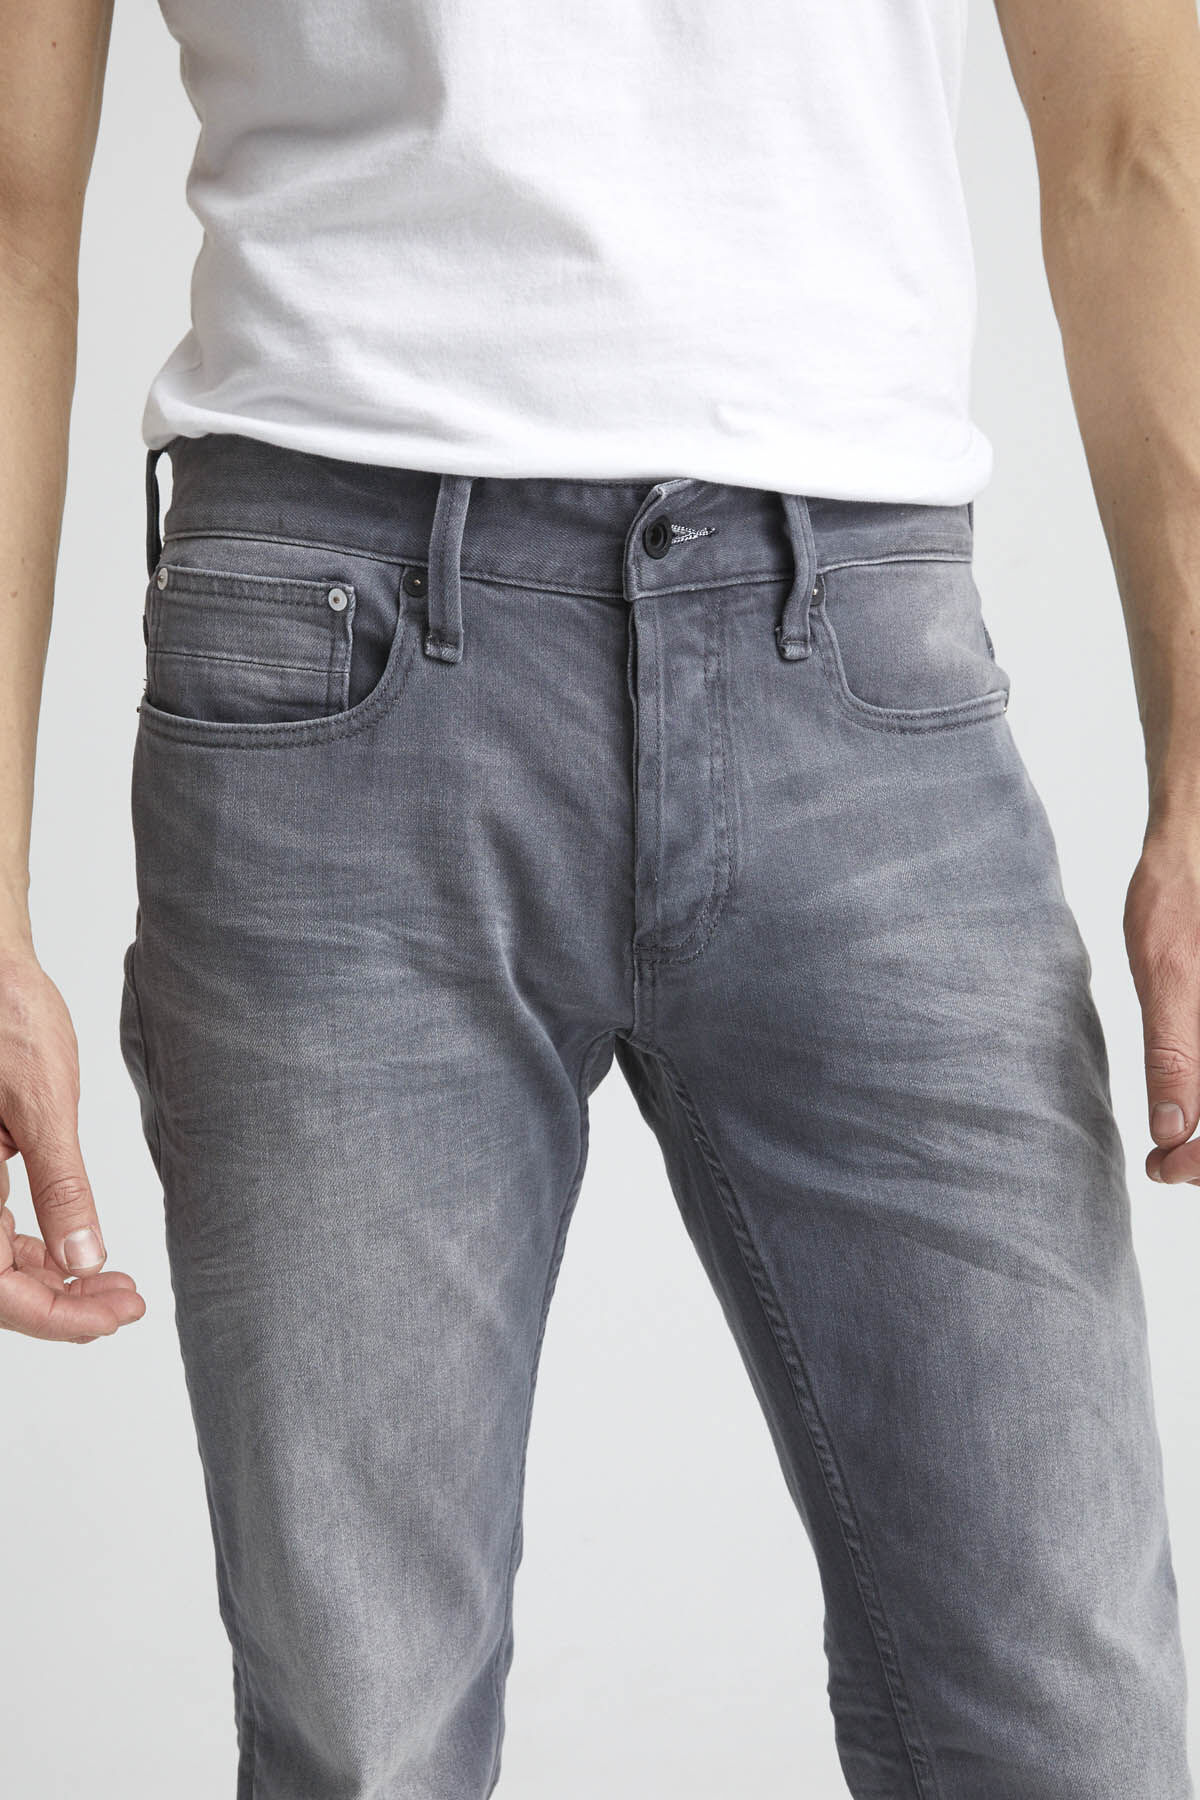 RAZOR Midweight Grey Denim - Slim Fit